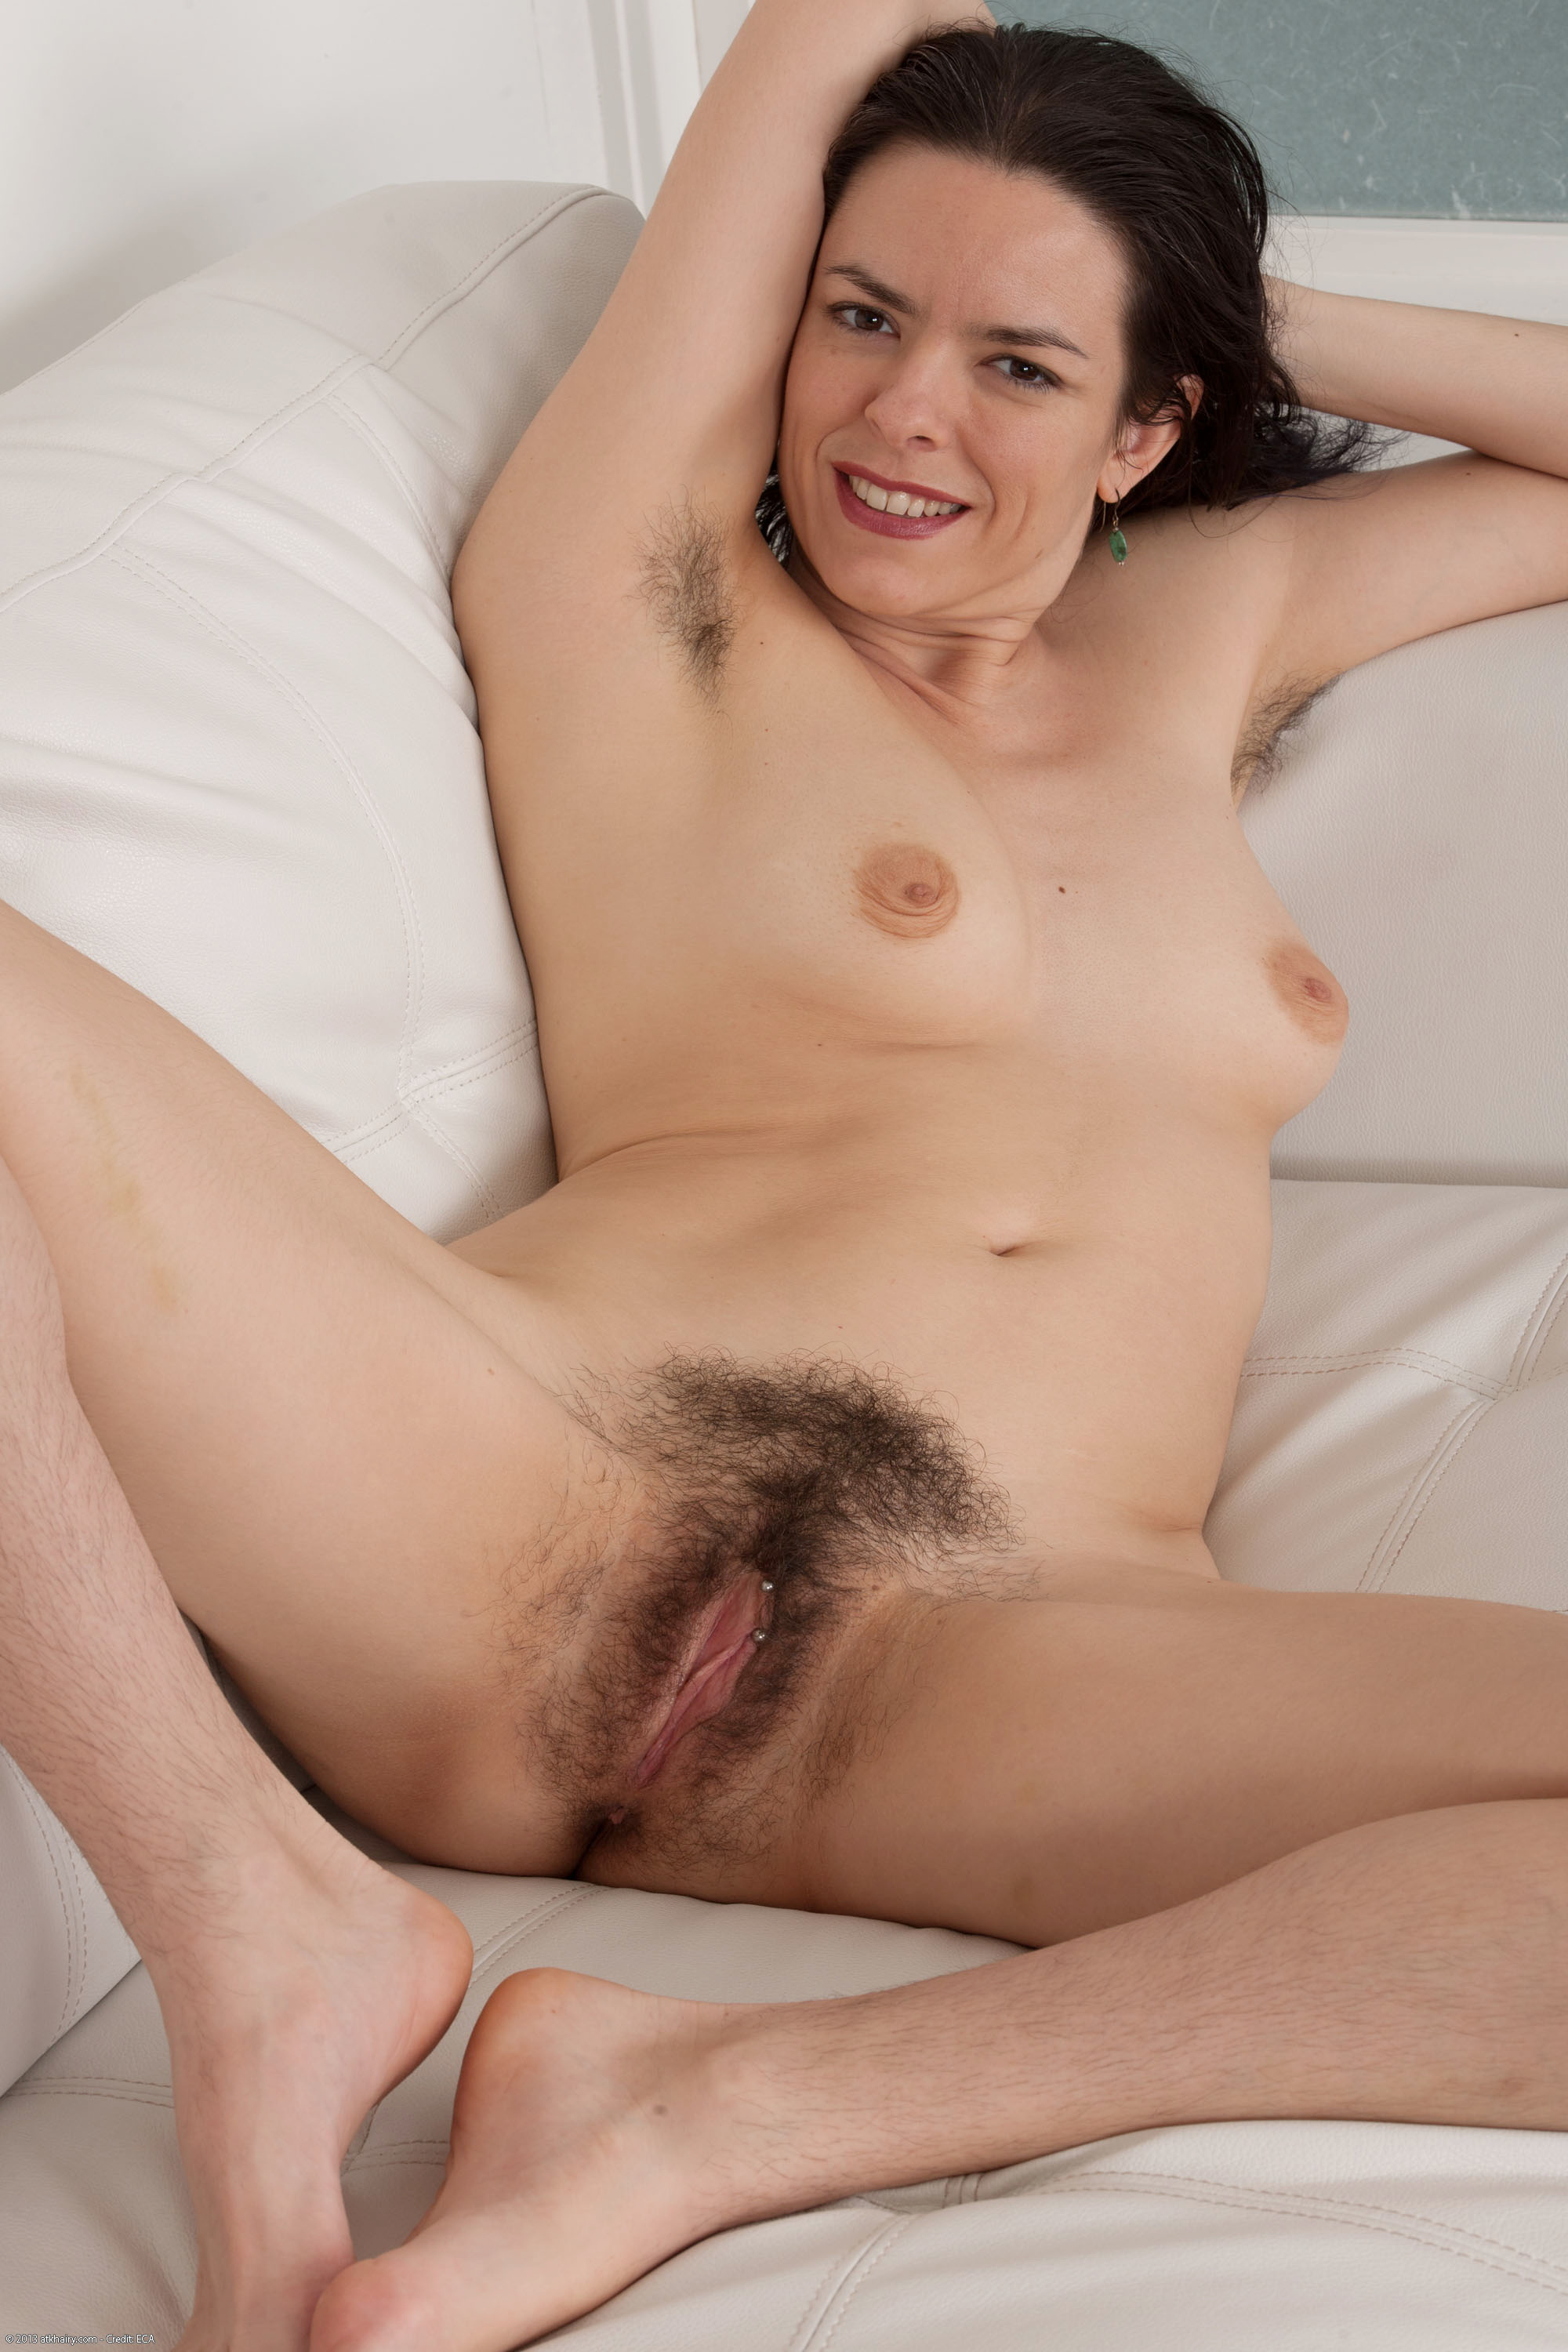 hot-hairy-nude-russian-women-ejaculating-inside-a-pussy